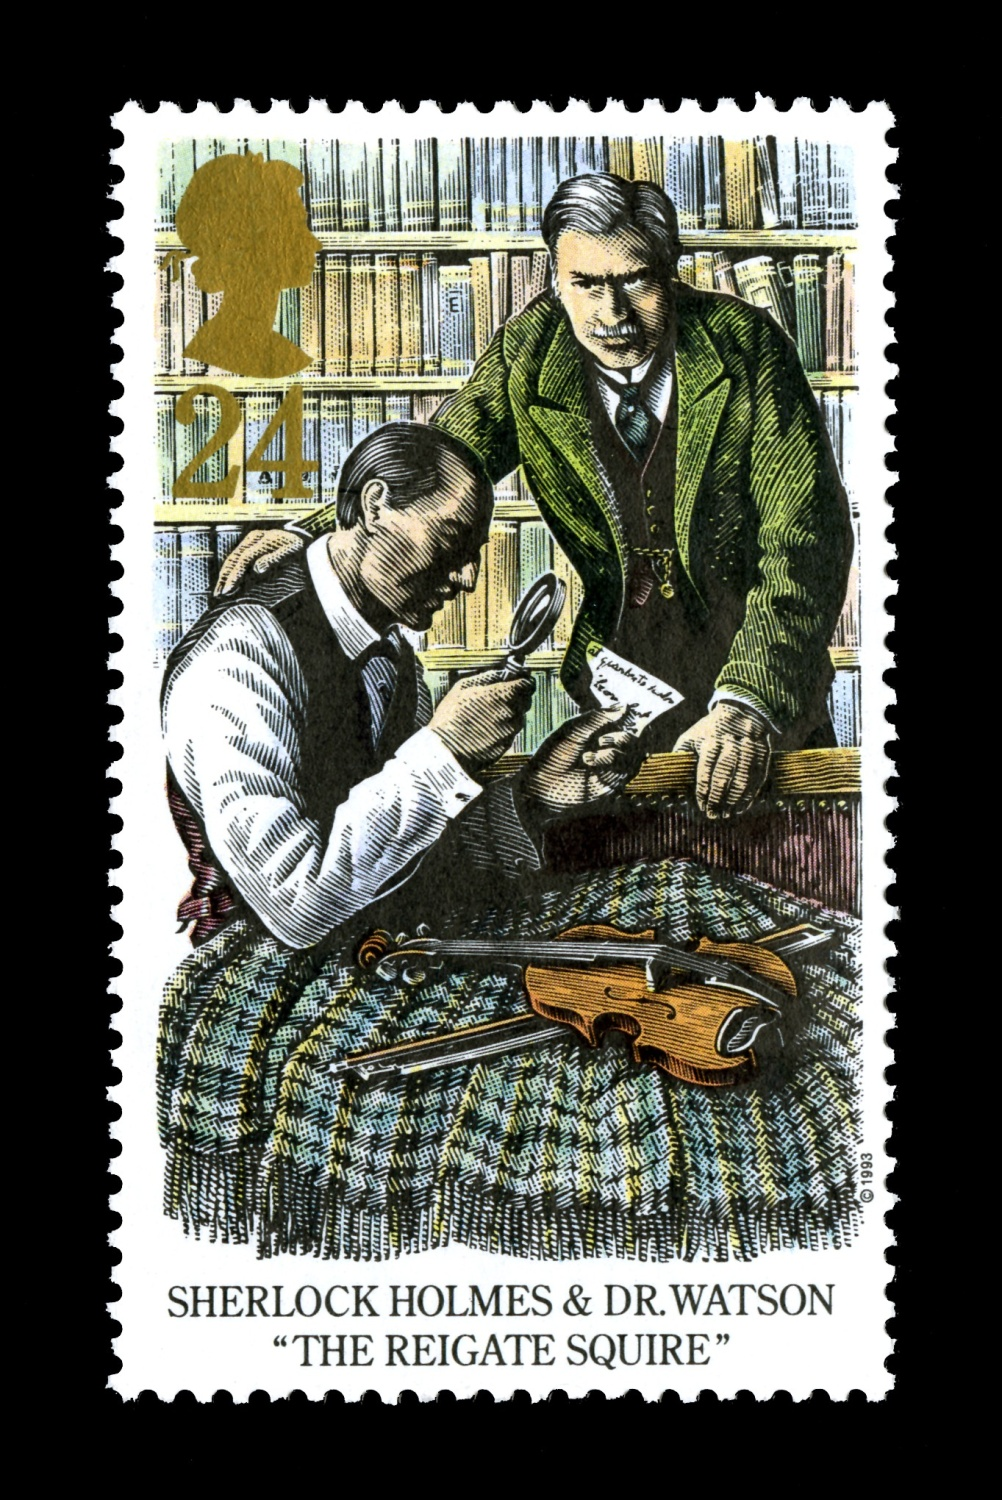 Special Stamps 50th anniversary Royal Mail Sherlock Holmes